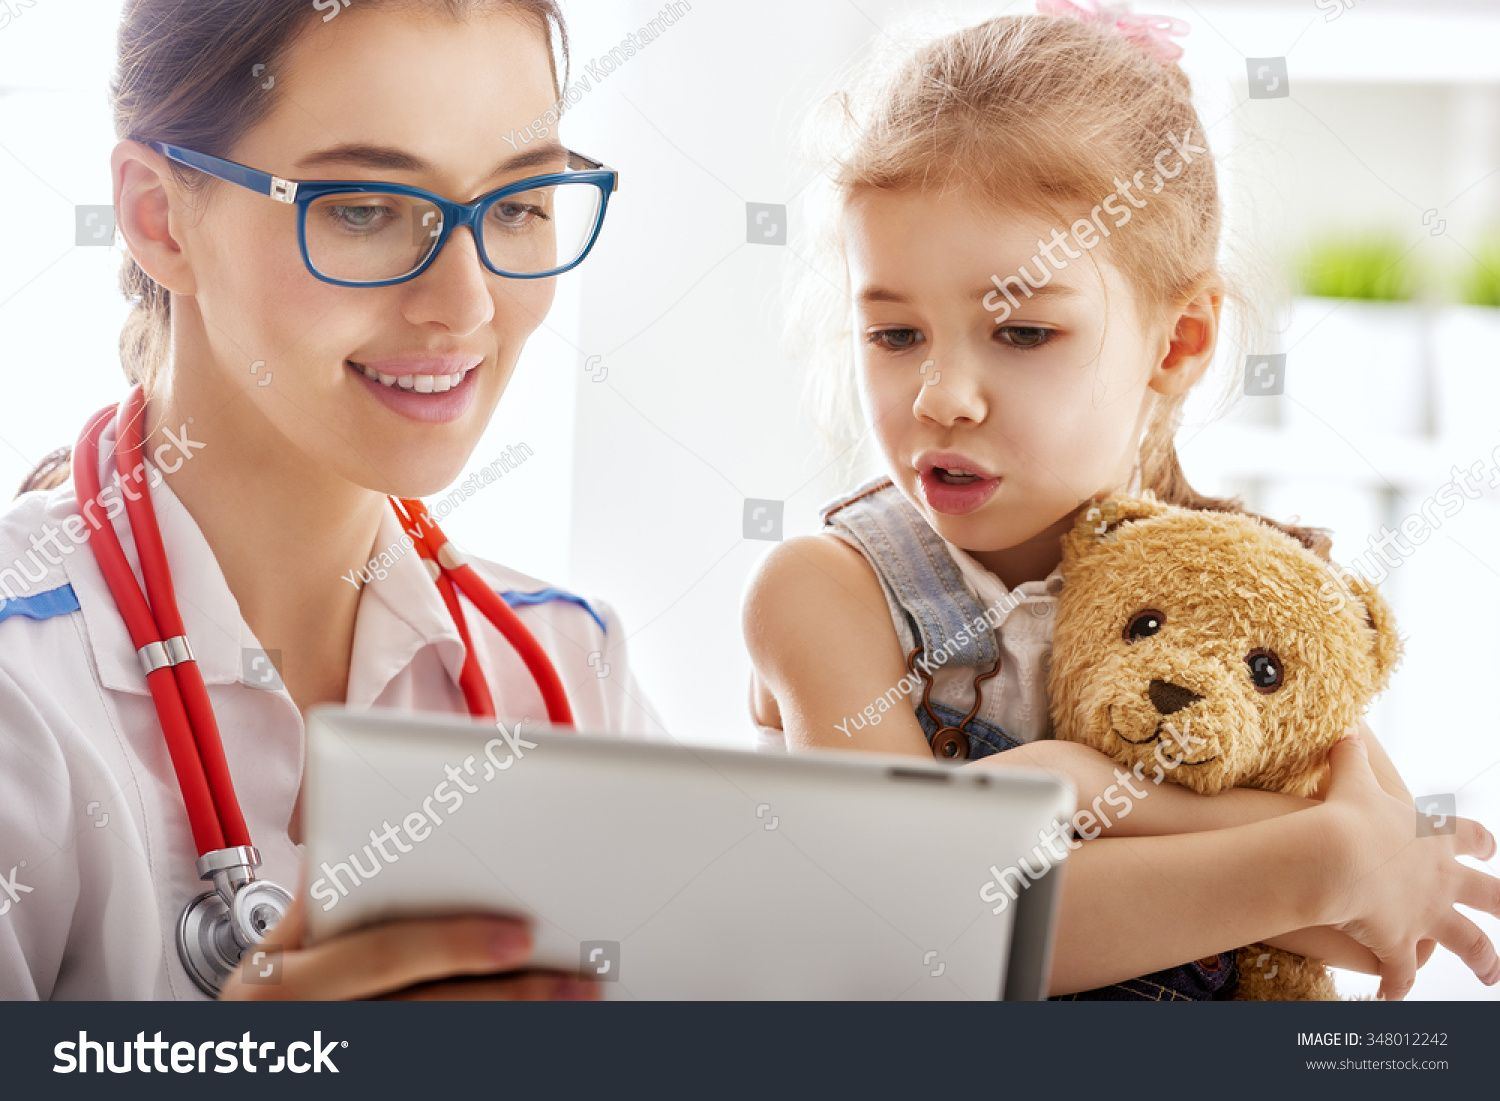 doctor examining a child girl in a hospital Ad , Ad,